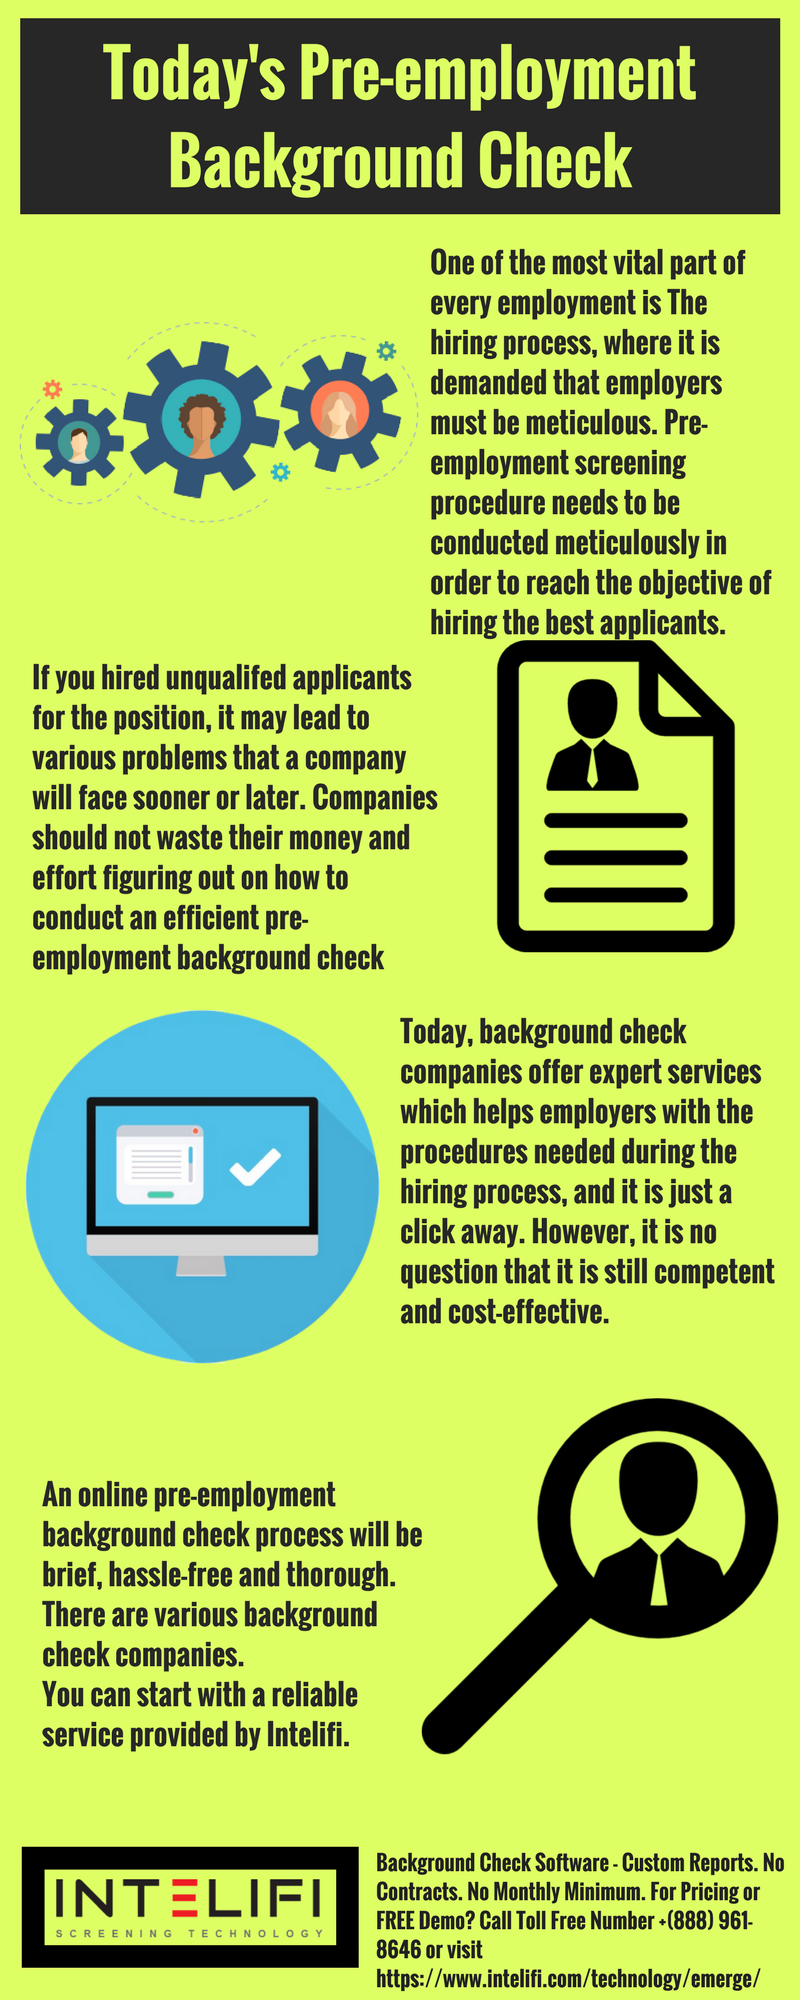 How Long Does Background Check Take For Job